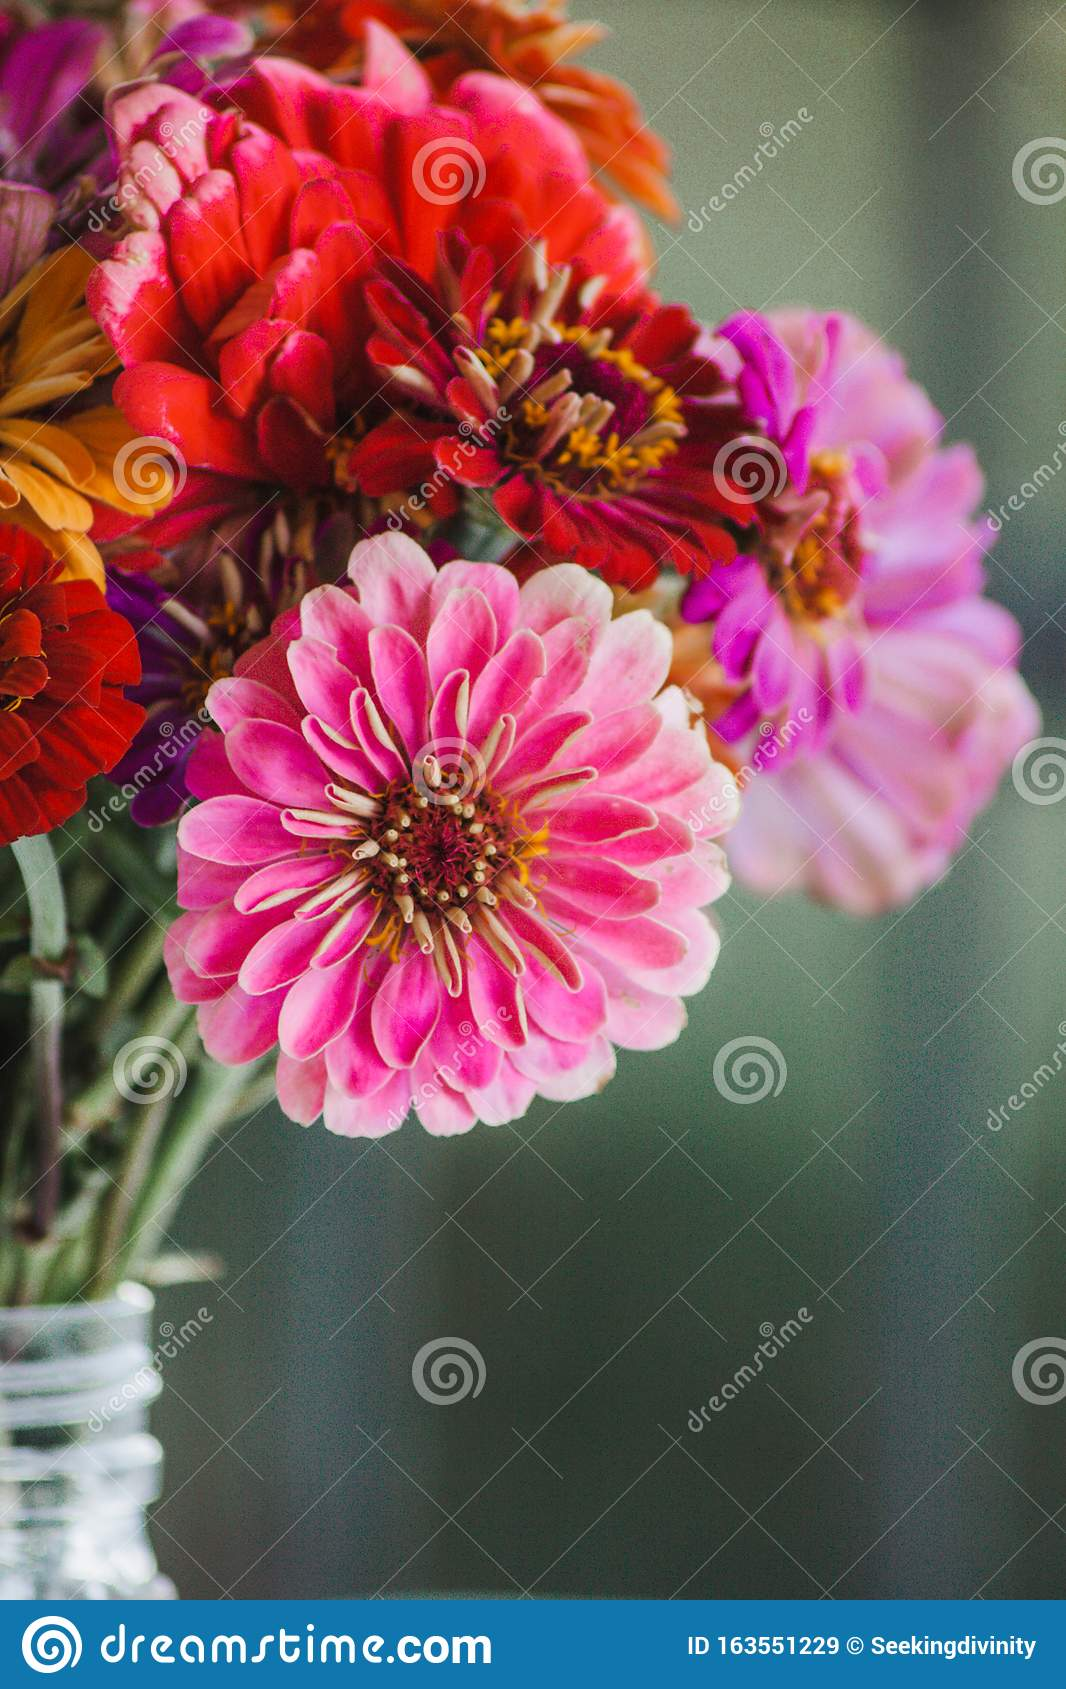 Pink Wildflower In A Bouquet Stock Image Image Of Bouquet Pink 163551229